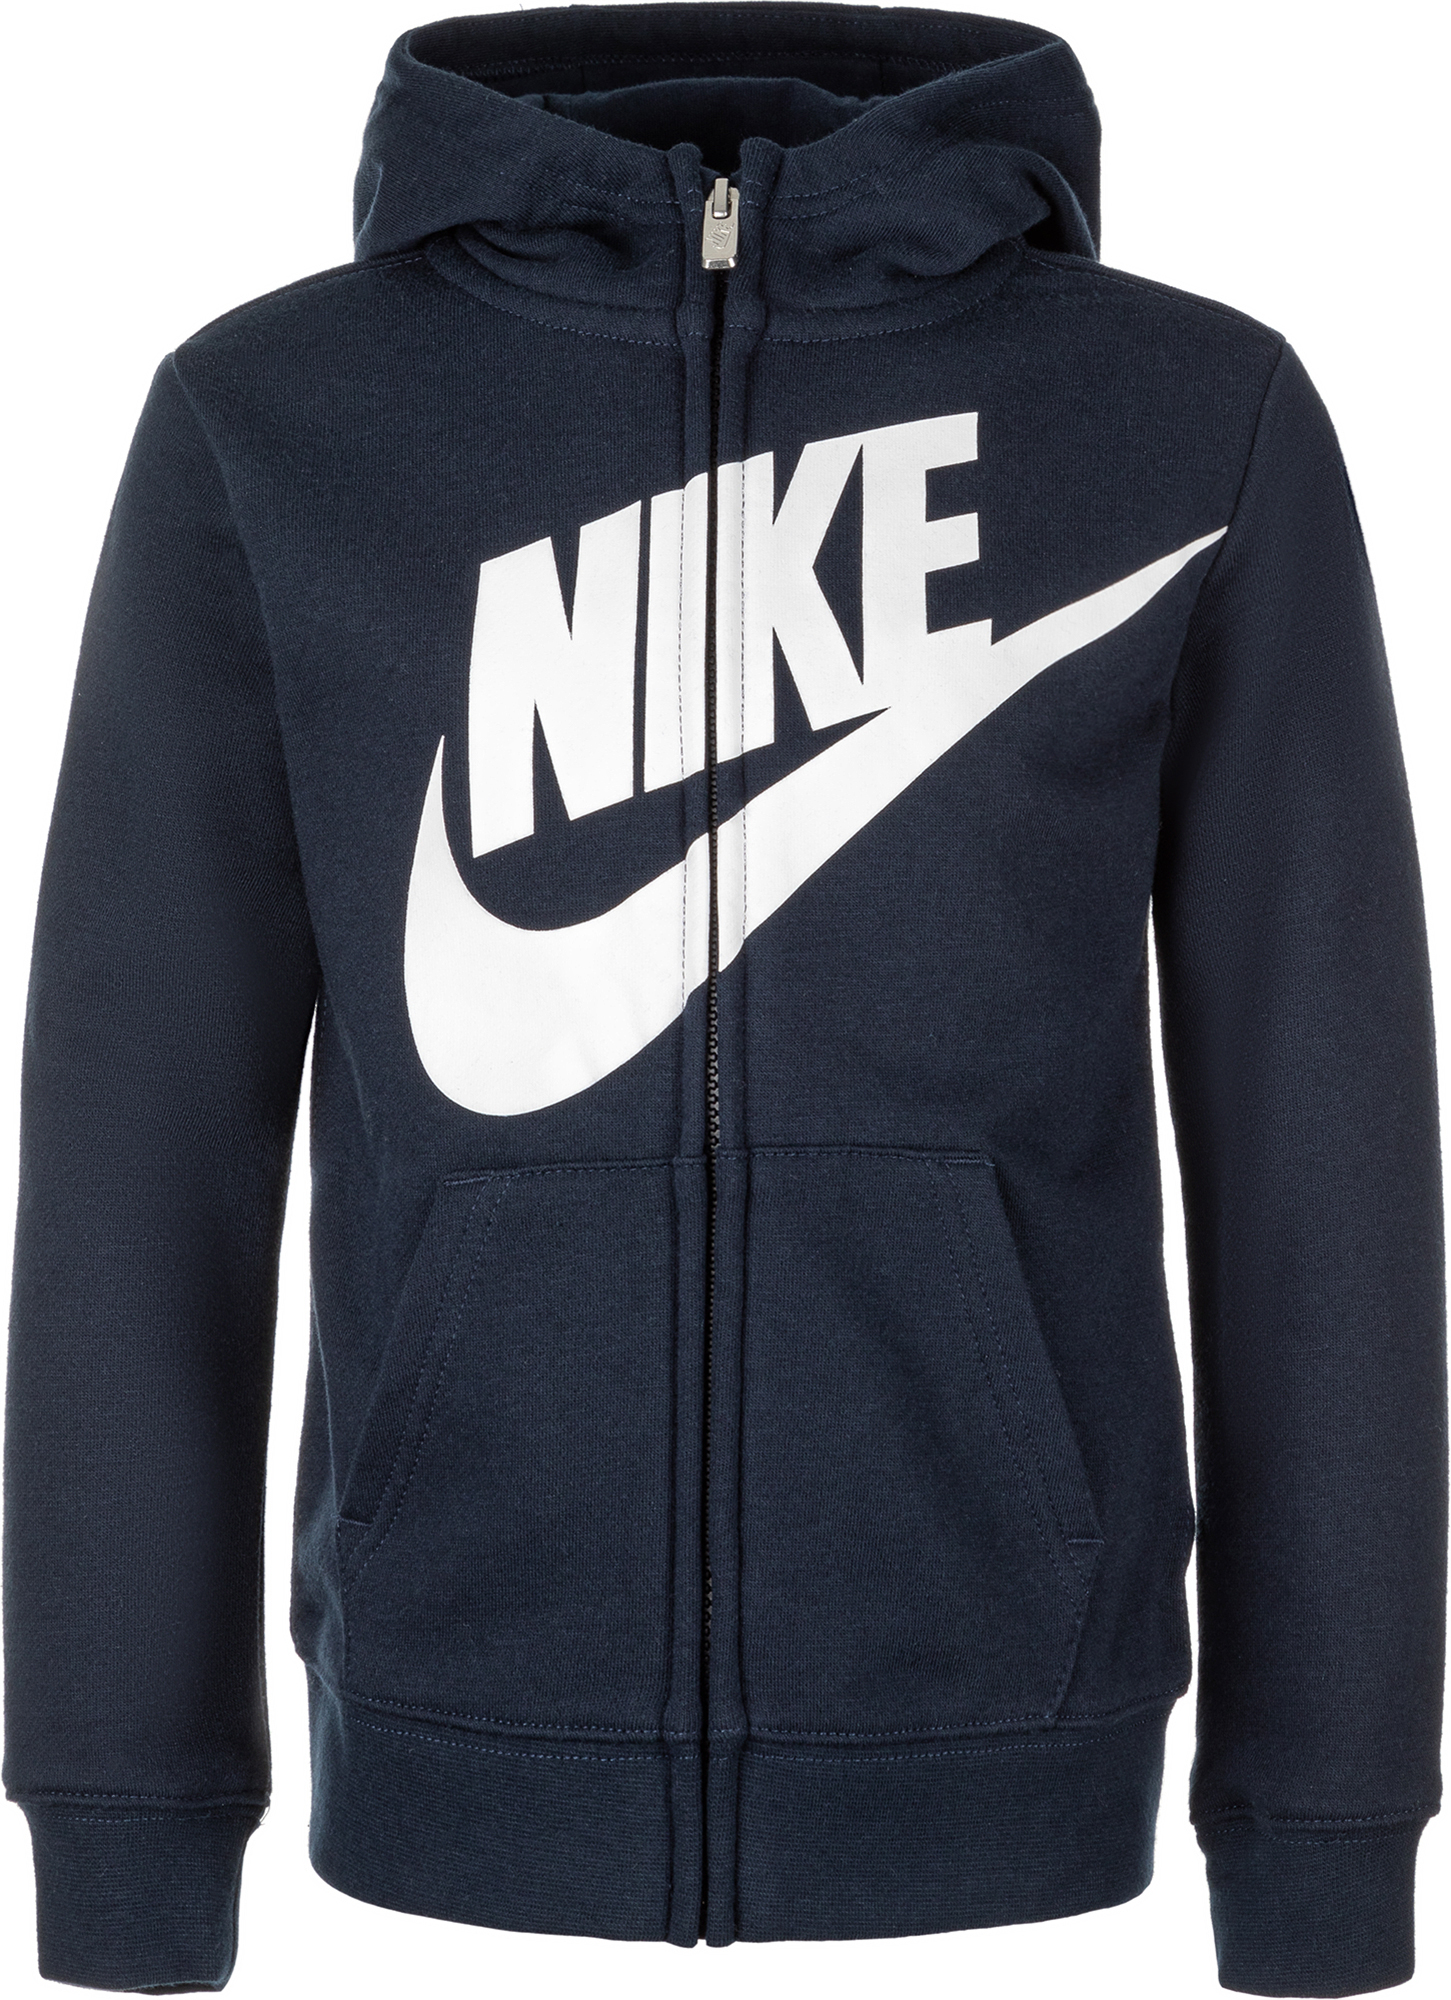 Nike Толстовка для мальчиков Nike Futura French Terry, размер 116 nike толстовка для мальчиков nike therma размер 122